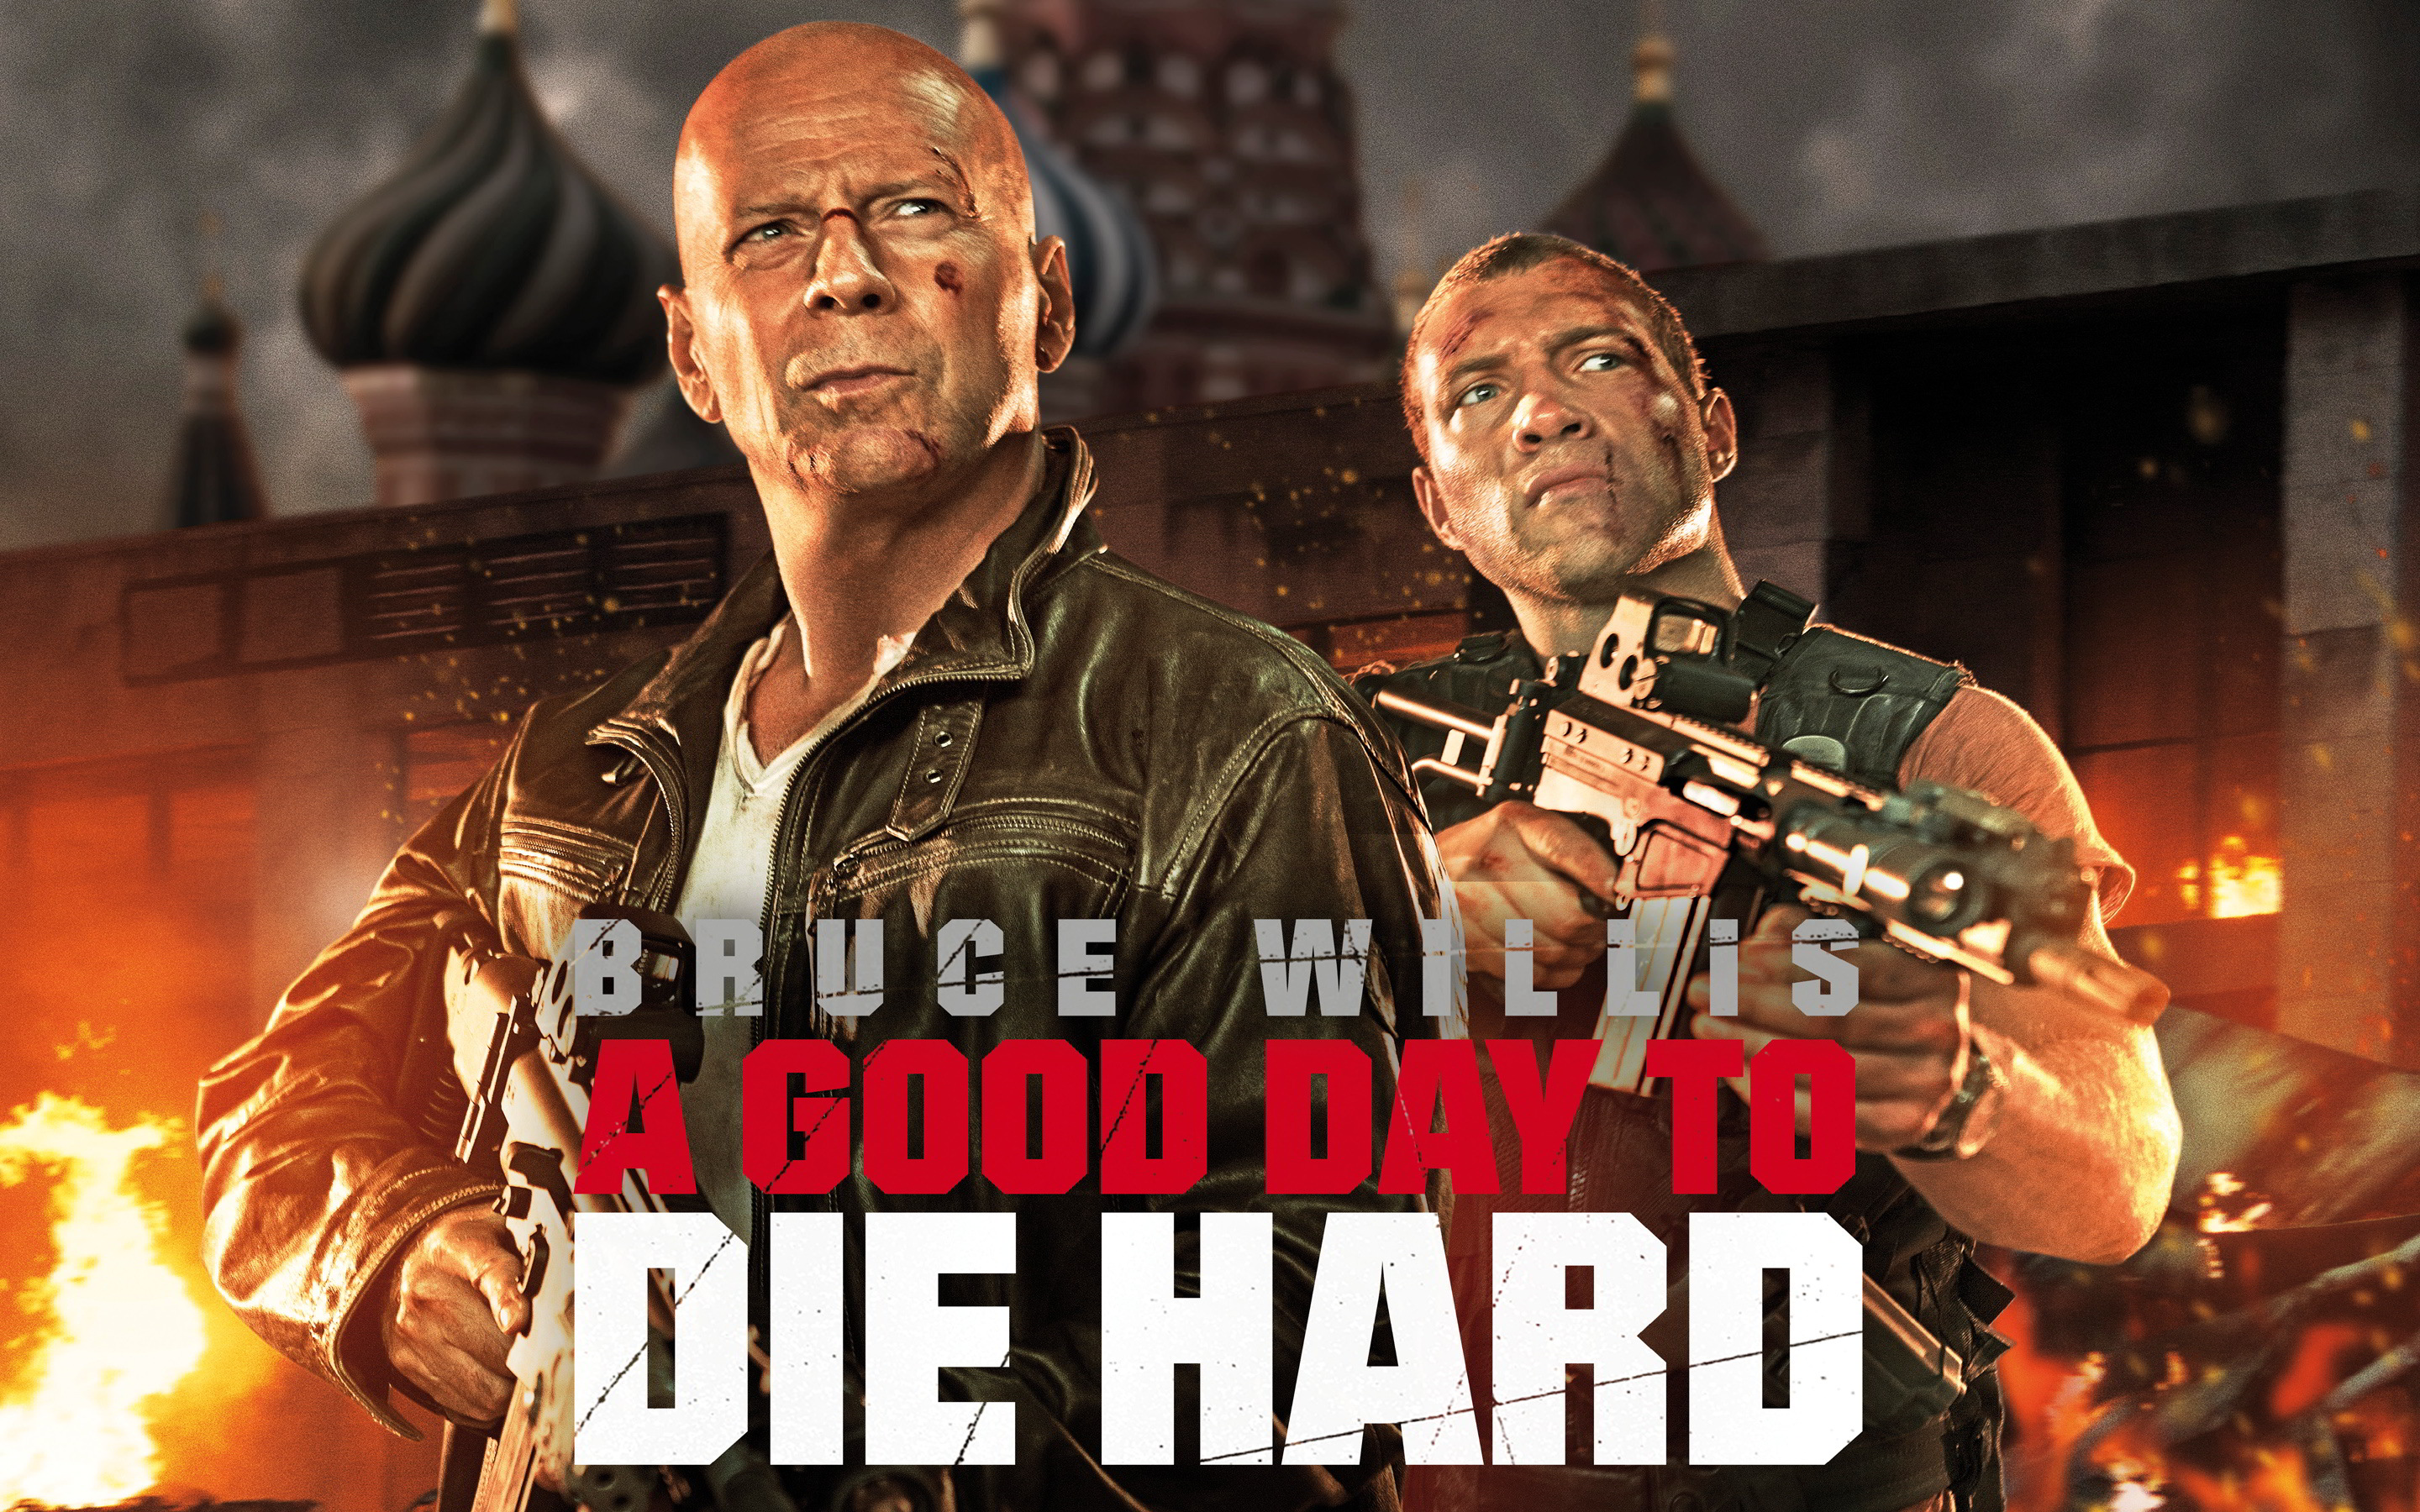 Good way to die hard 5 movie